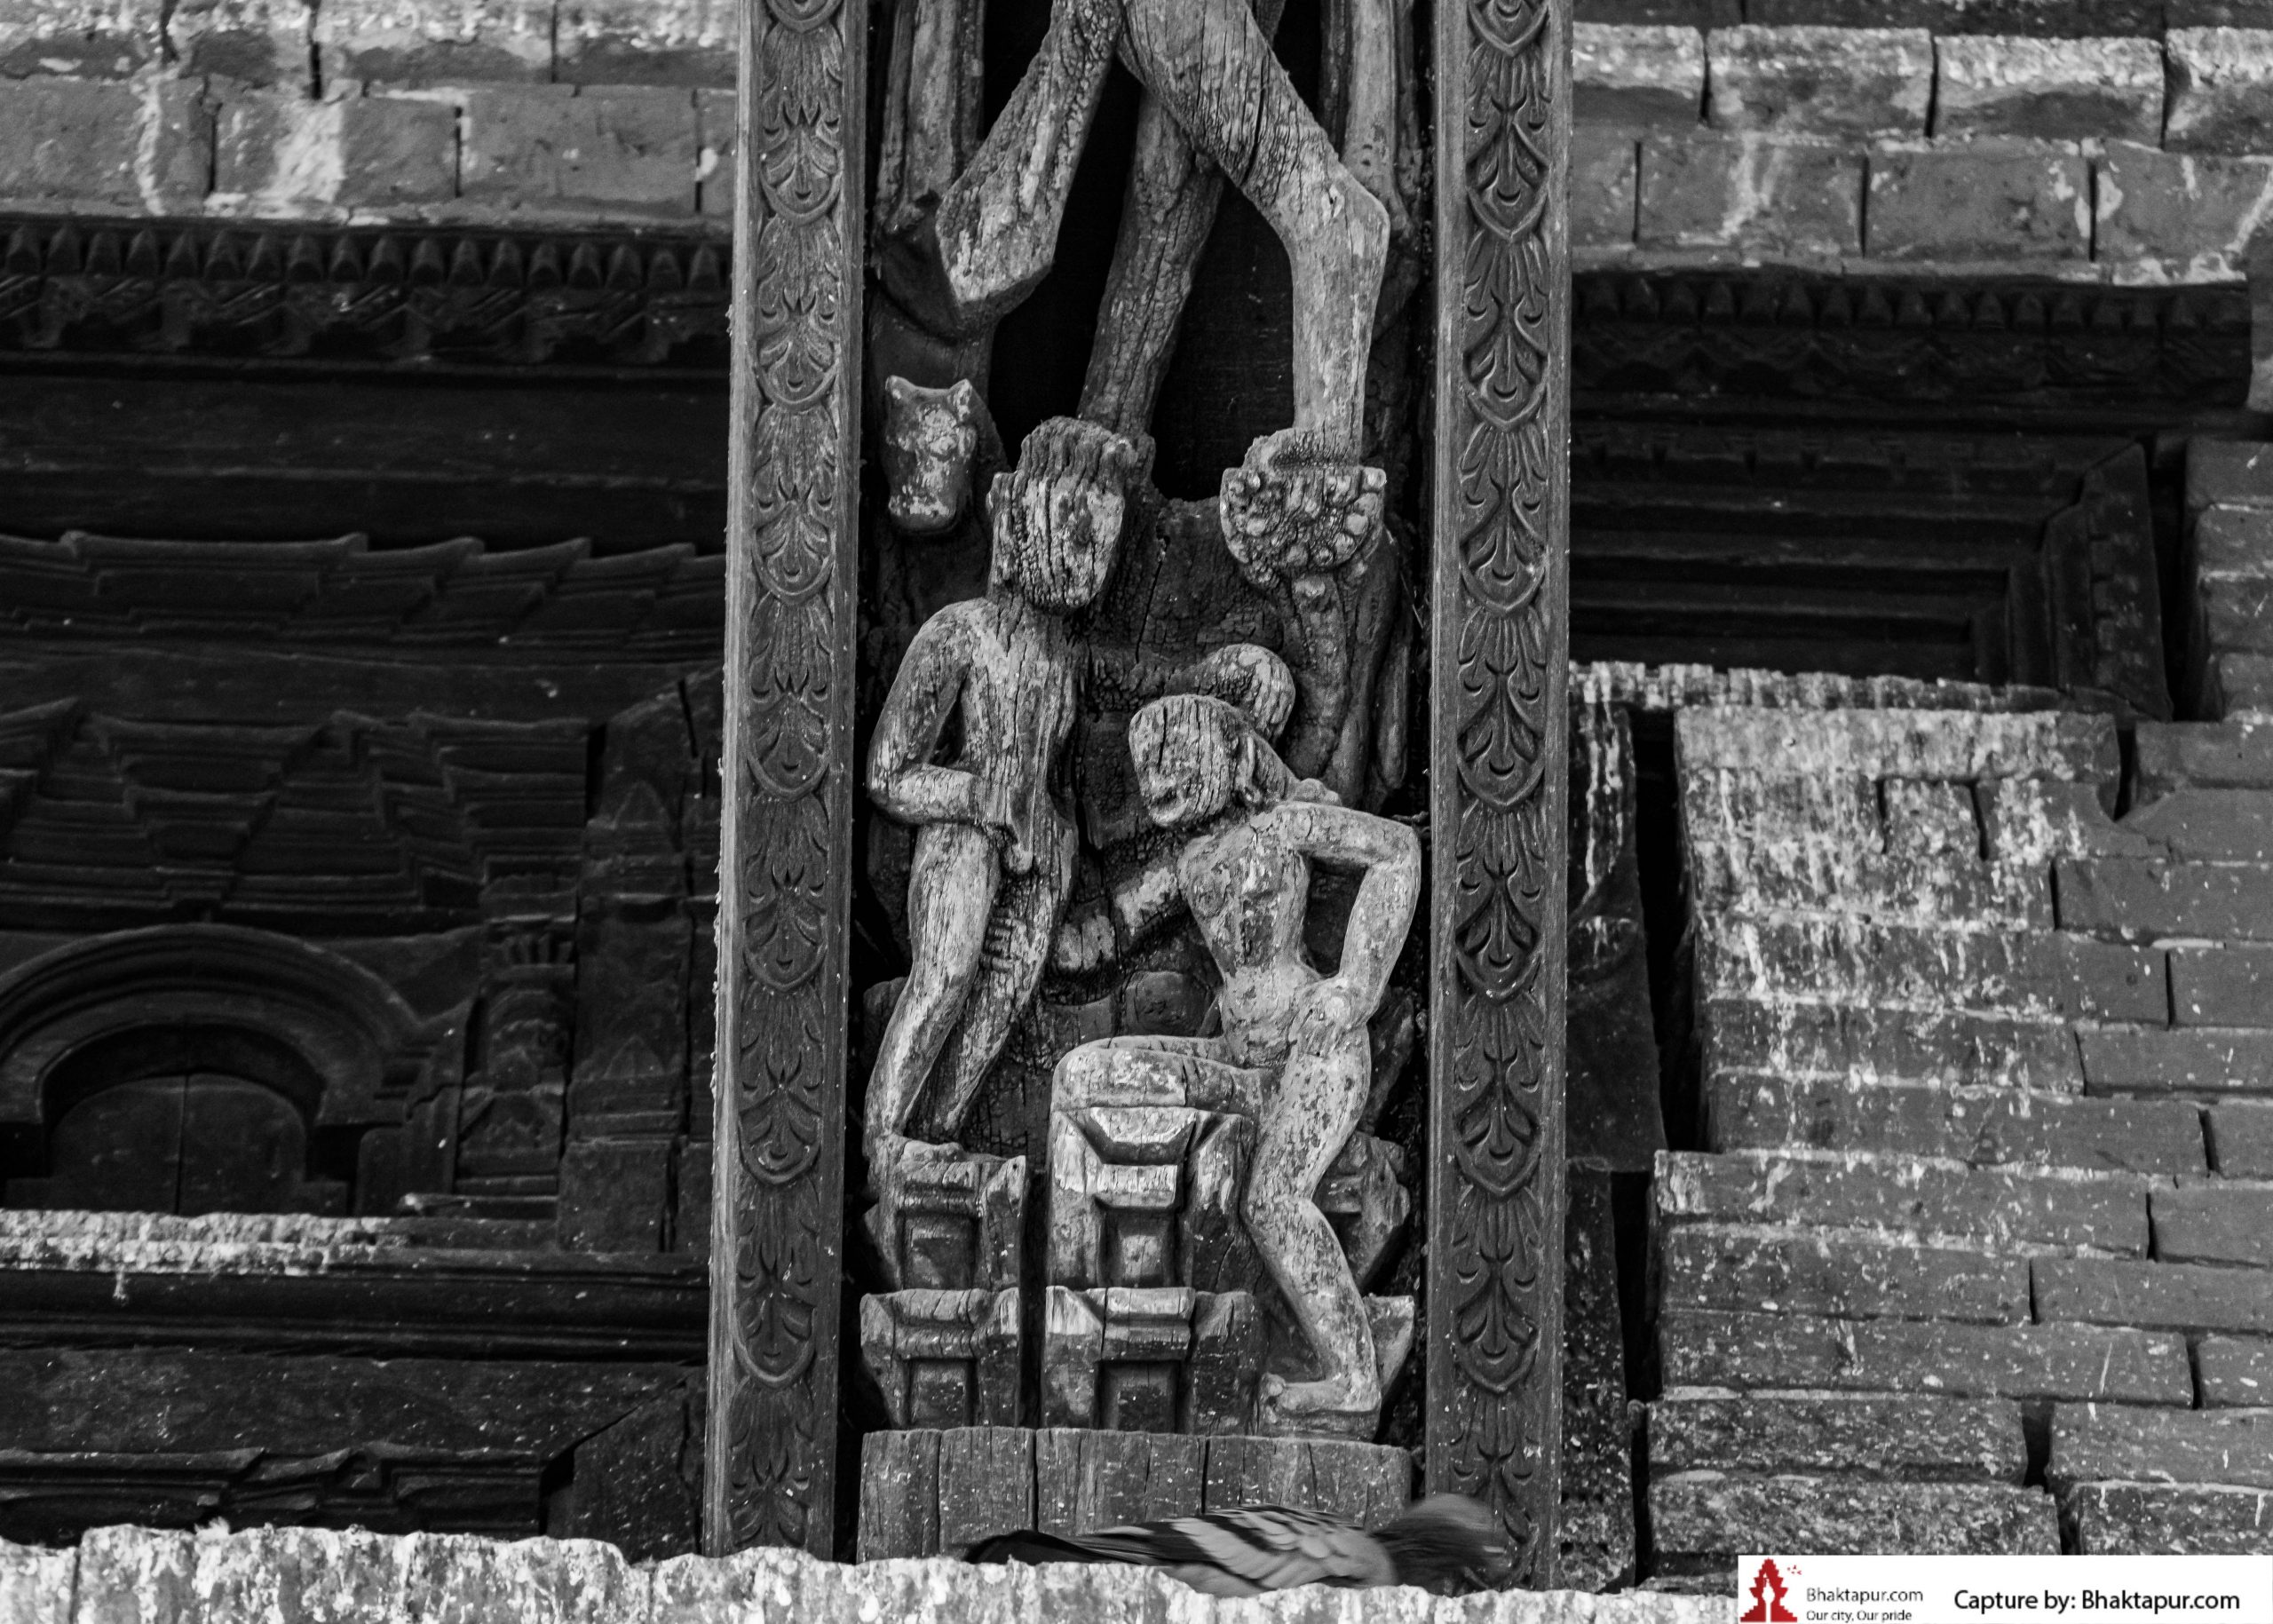 https://www.bhaktapur.com/wp-content/uploads/2021/08/erotic-carving-94-of-137-scaled.jpg